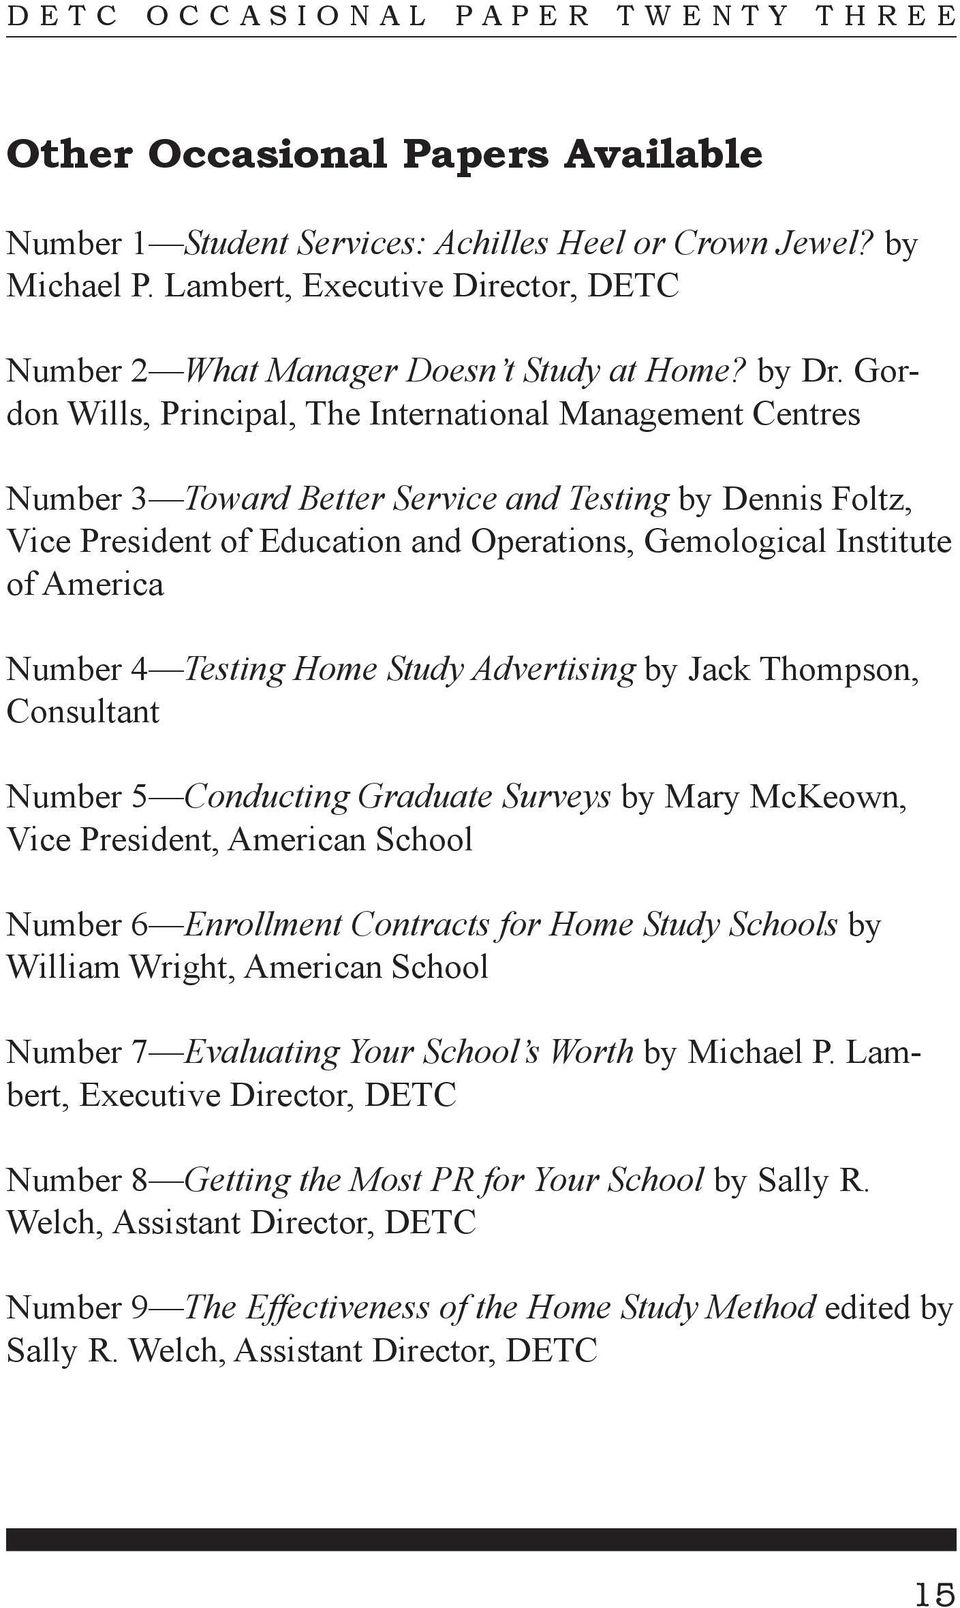 Number 4 Testing Home Study Advertising by Jack Thompson, Consultant Number 5 Conducting Graduate Surveys by Mary McKeown, Vice President, American School Number 6 Enrollment Contracts for Home Study